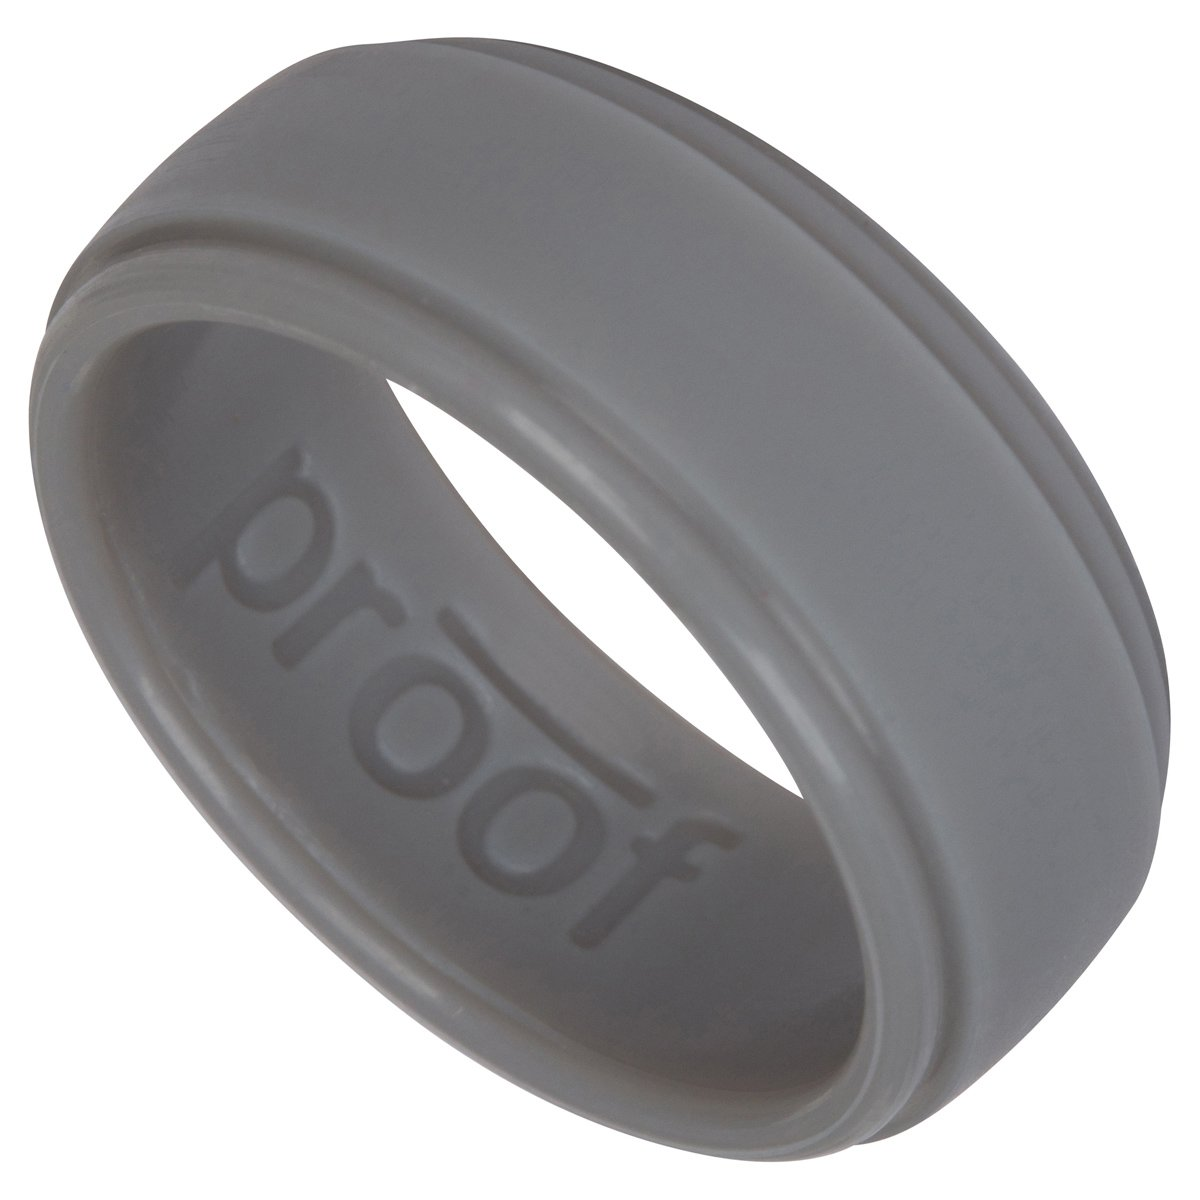 Amazon : Men's Silicone Wedding Ring By Proof  Protects Your Hands &  Proves Yourmitment With Unique, Sleek Design For Your Active Lifestyle